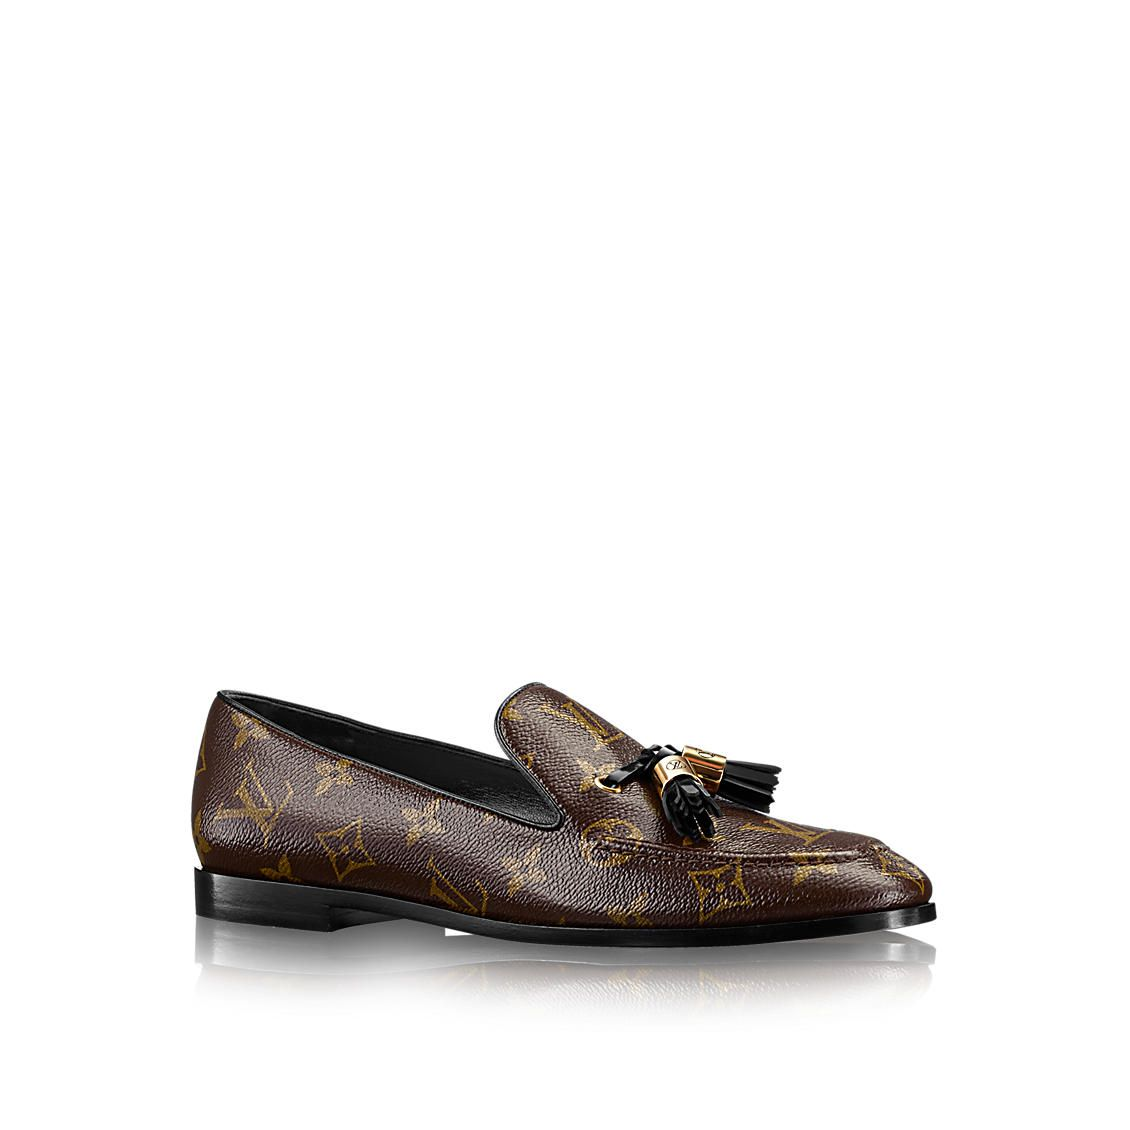 31869a8fb42 Society Loafer Women Shoes